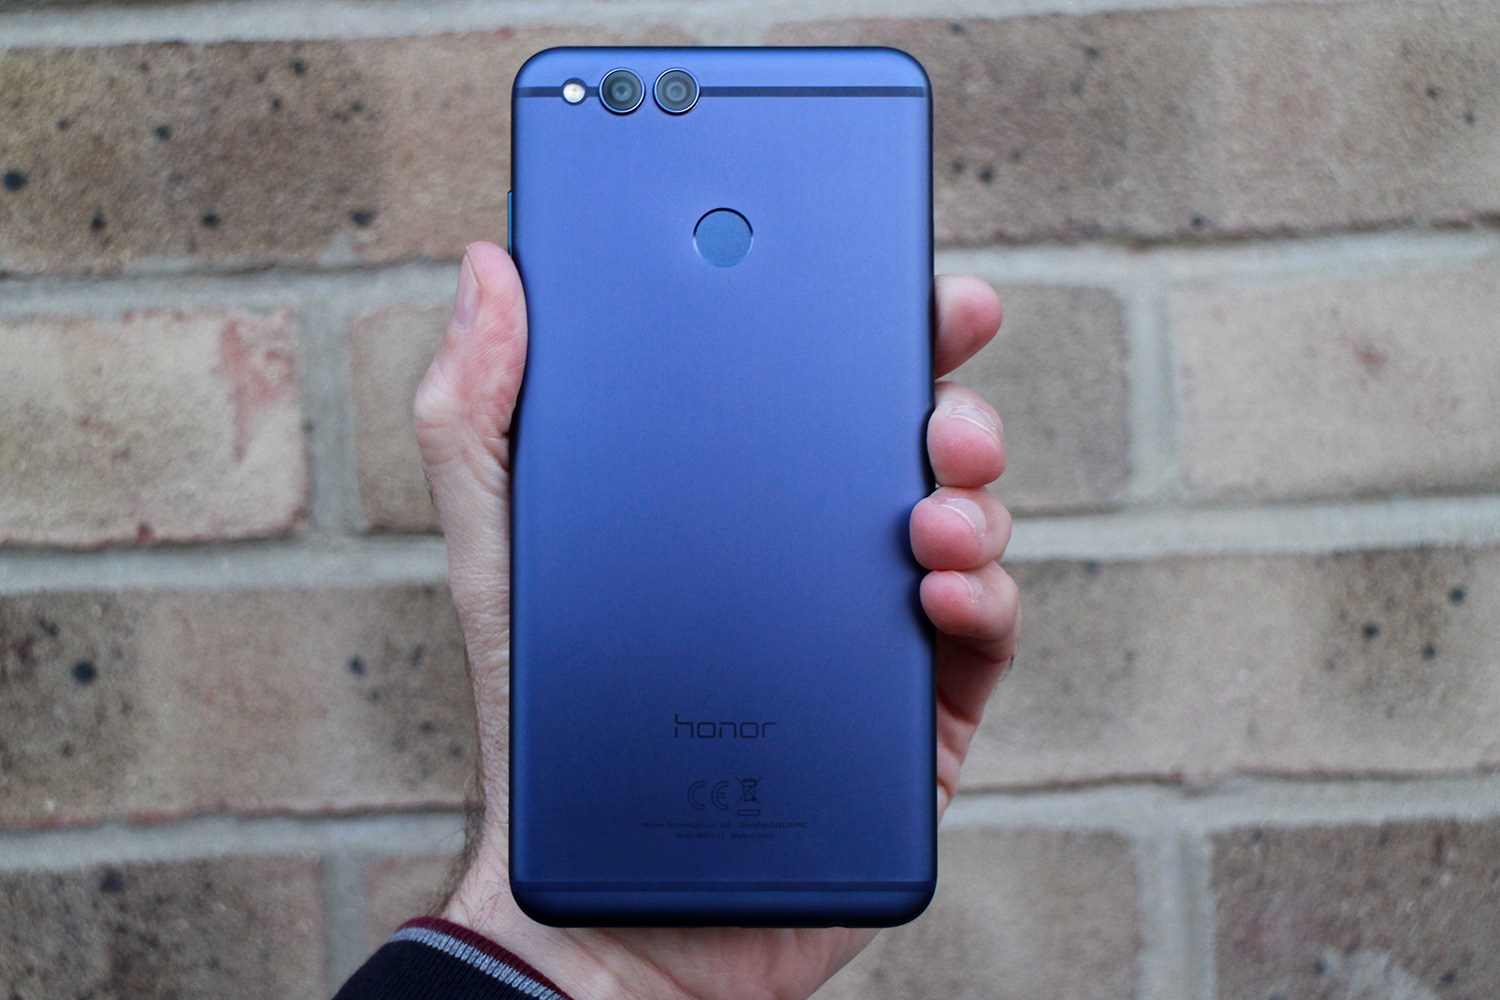 Nine released Honor devices to run on Oreo: Honor 8 a